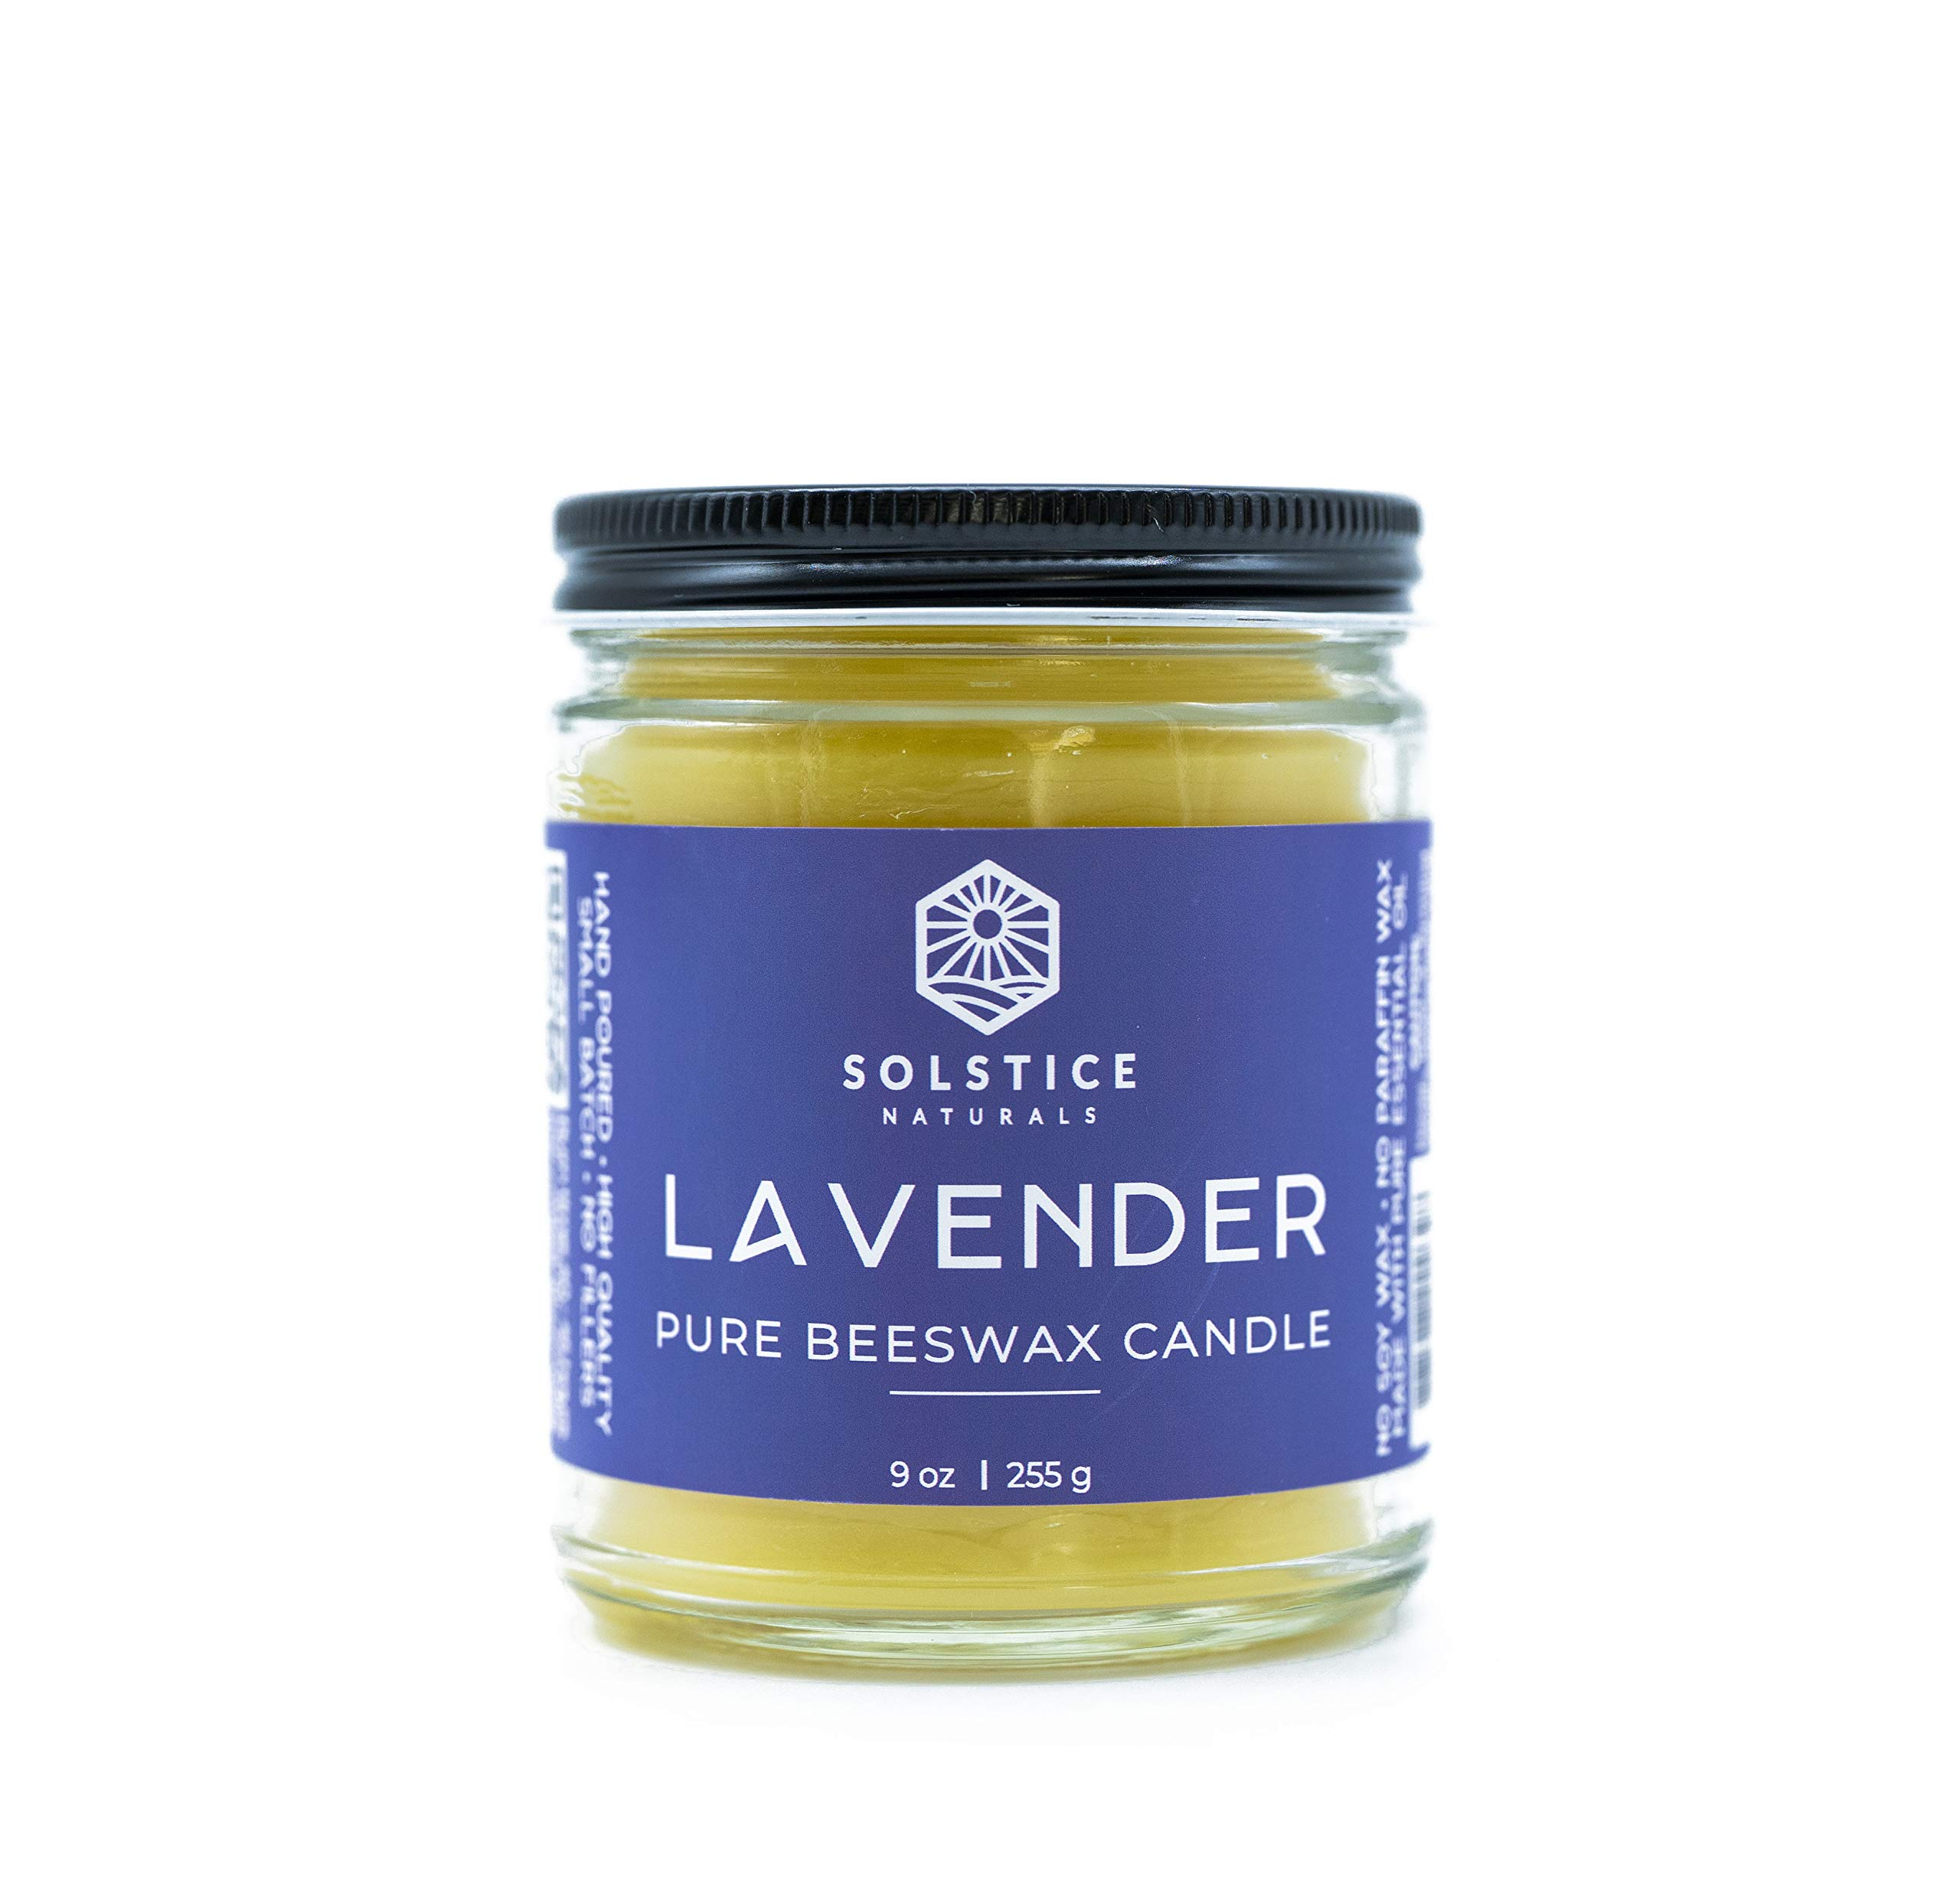 Solstice Naturals Lavender 100% Pure Beeswax Aromatherapy Candle - Naturally Scented with Essential Oil, 9 oz - Improved Scent - Handmade - No Soy Wax, No Paraffin Wax, No Synthetic Scents, No Fillers by Solstice Naturals